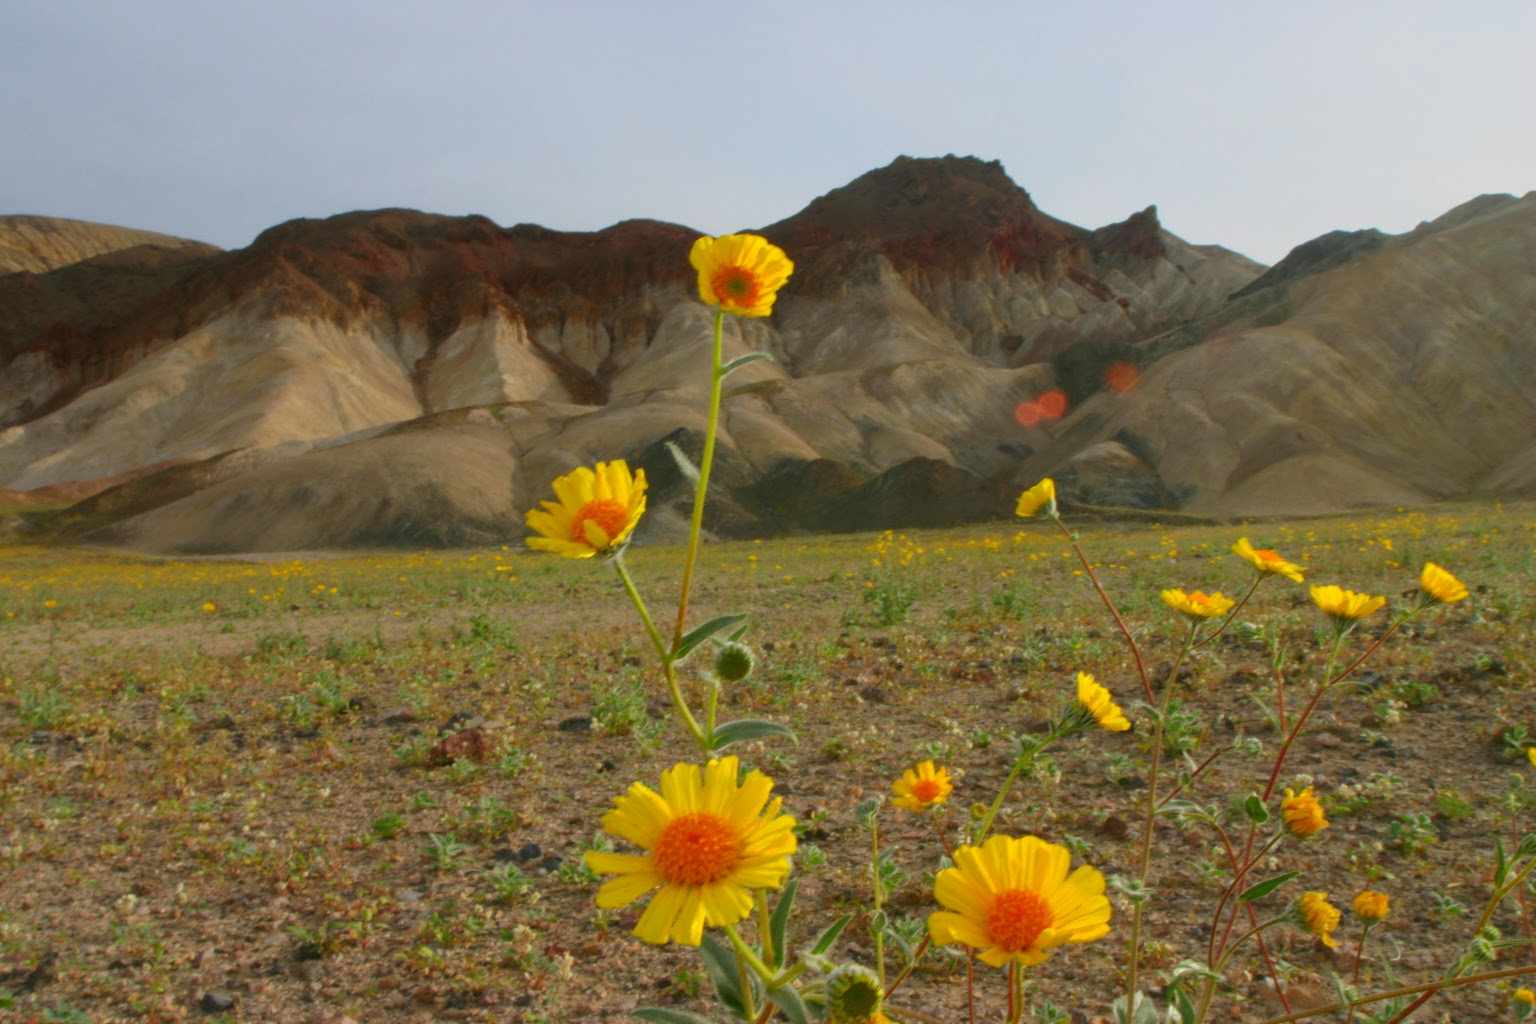 http://upload.wikimedia.org/wikipedia/commons/3/3f/Death_valley_flowers_1.jpg